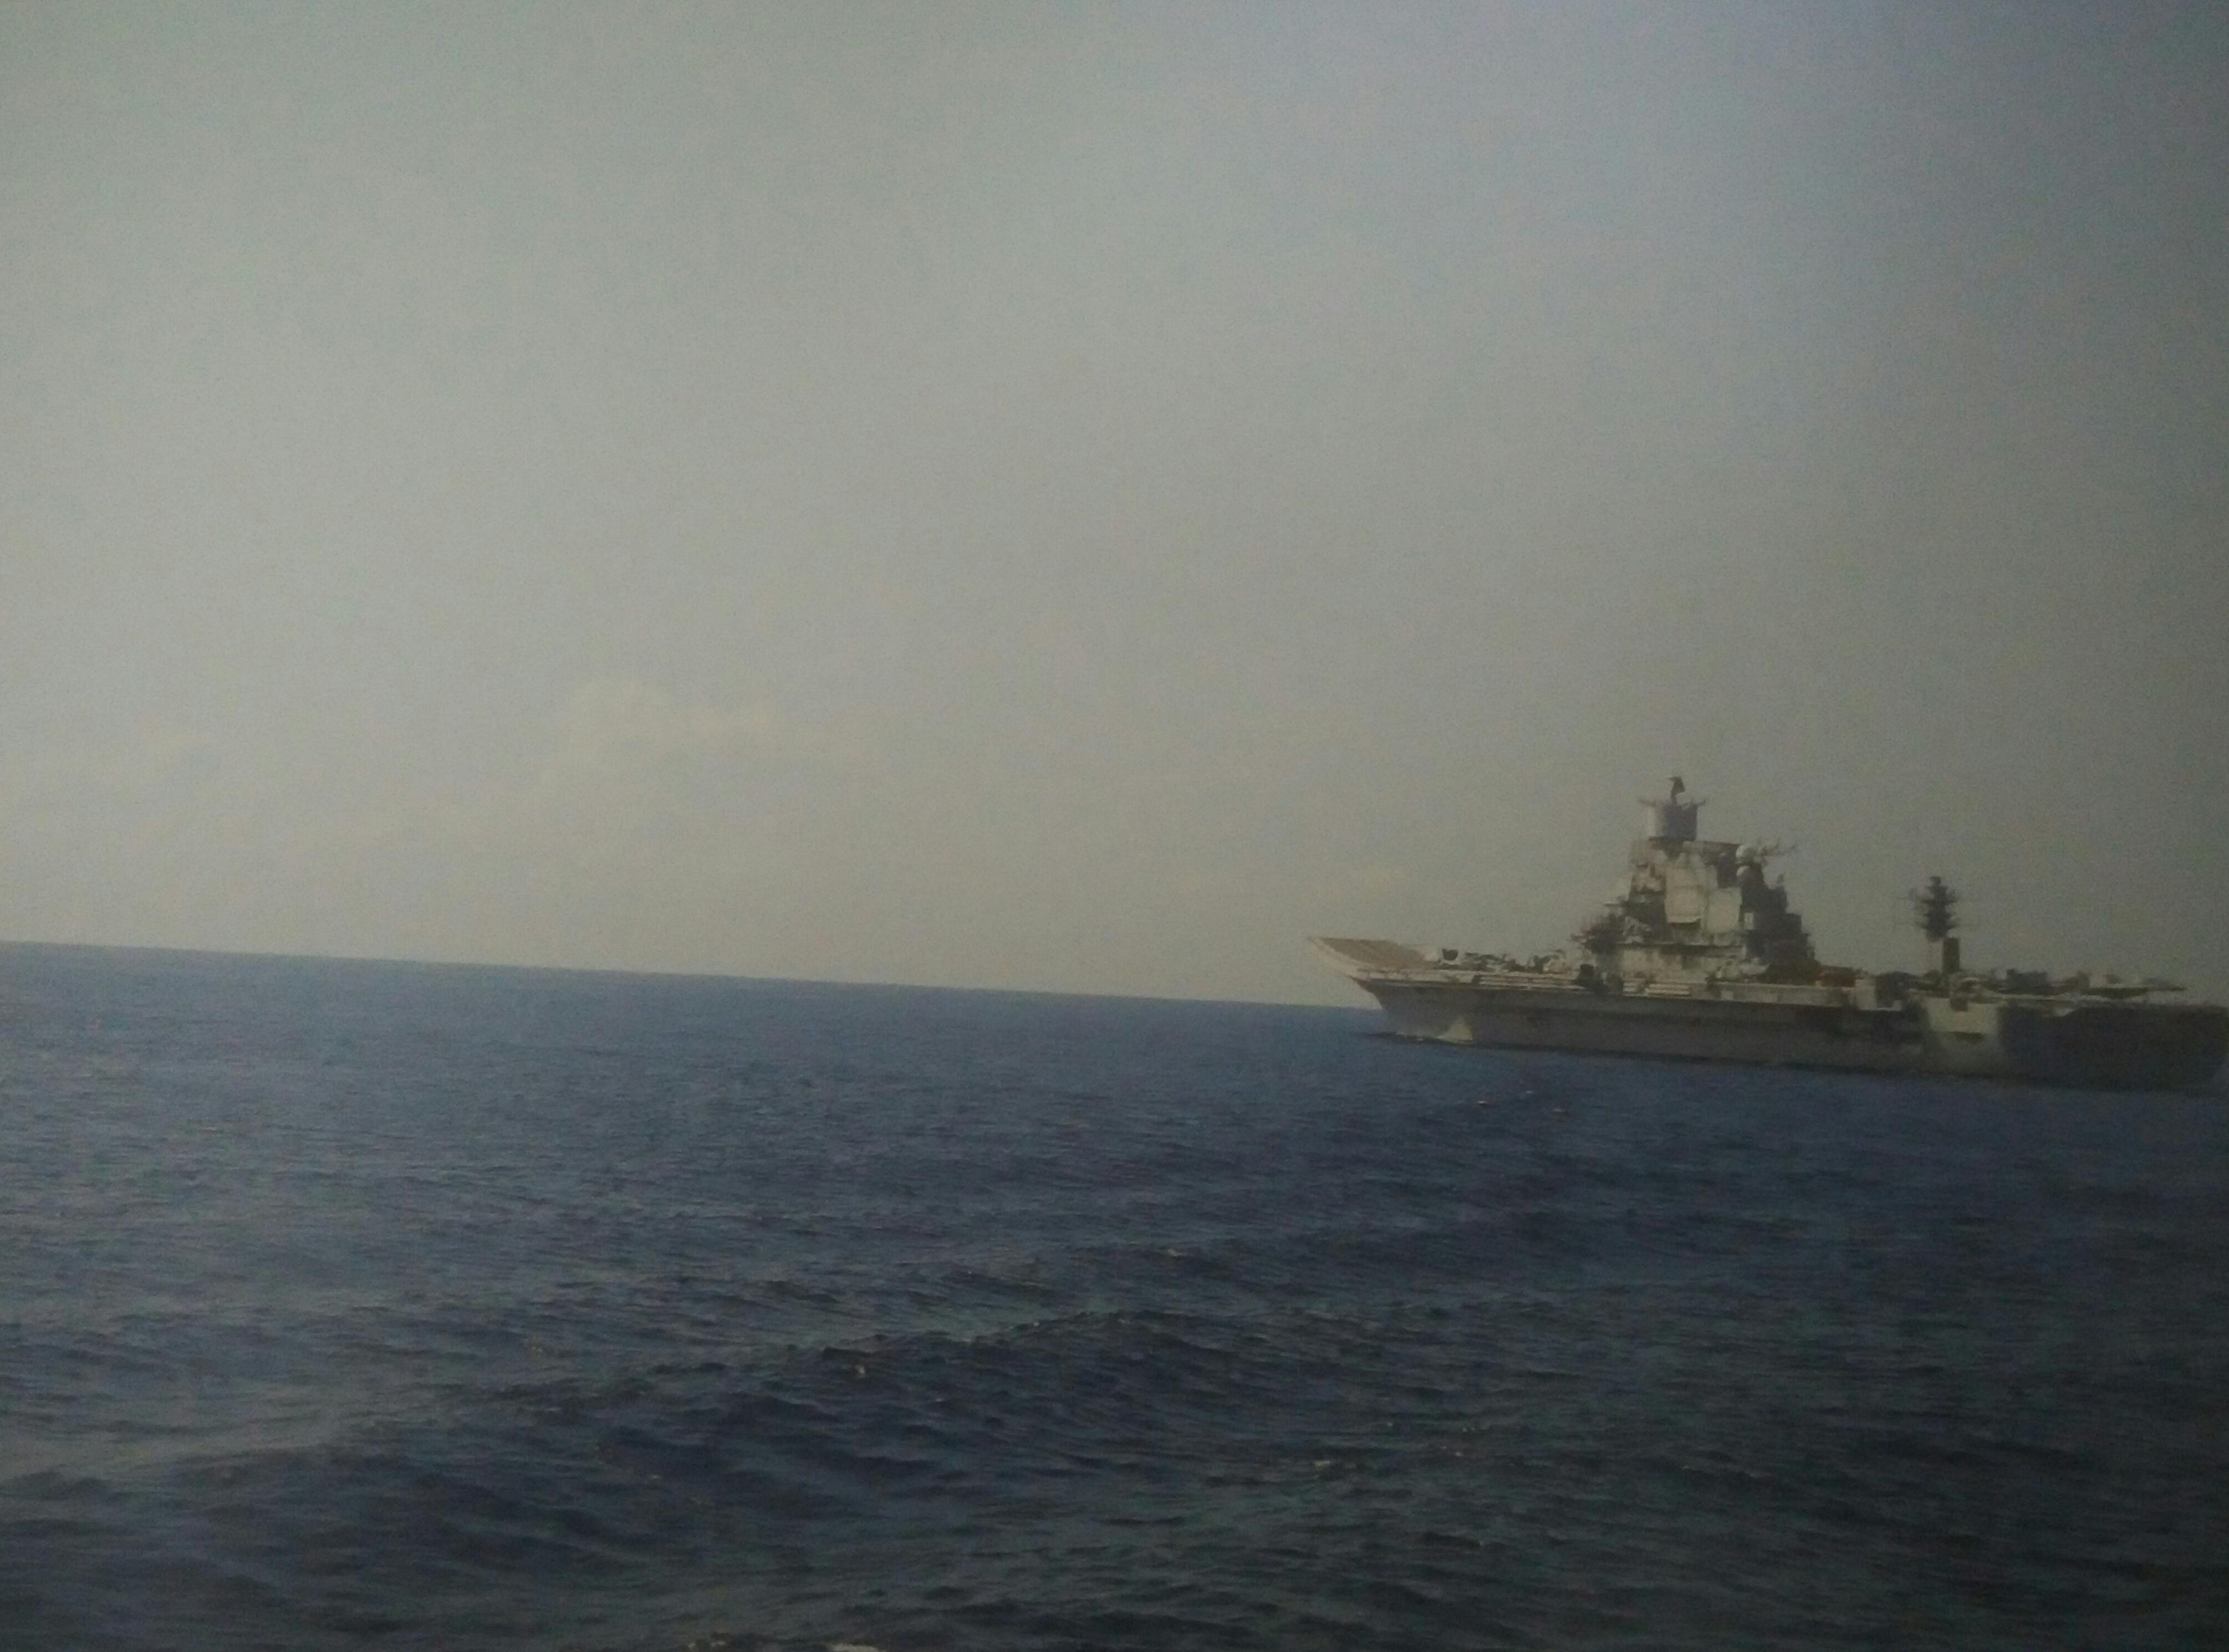 How India Can Counter China in Indian Ocean